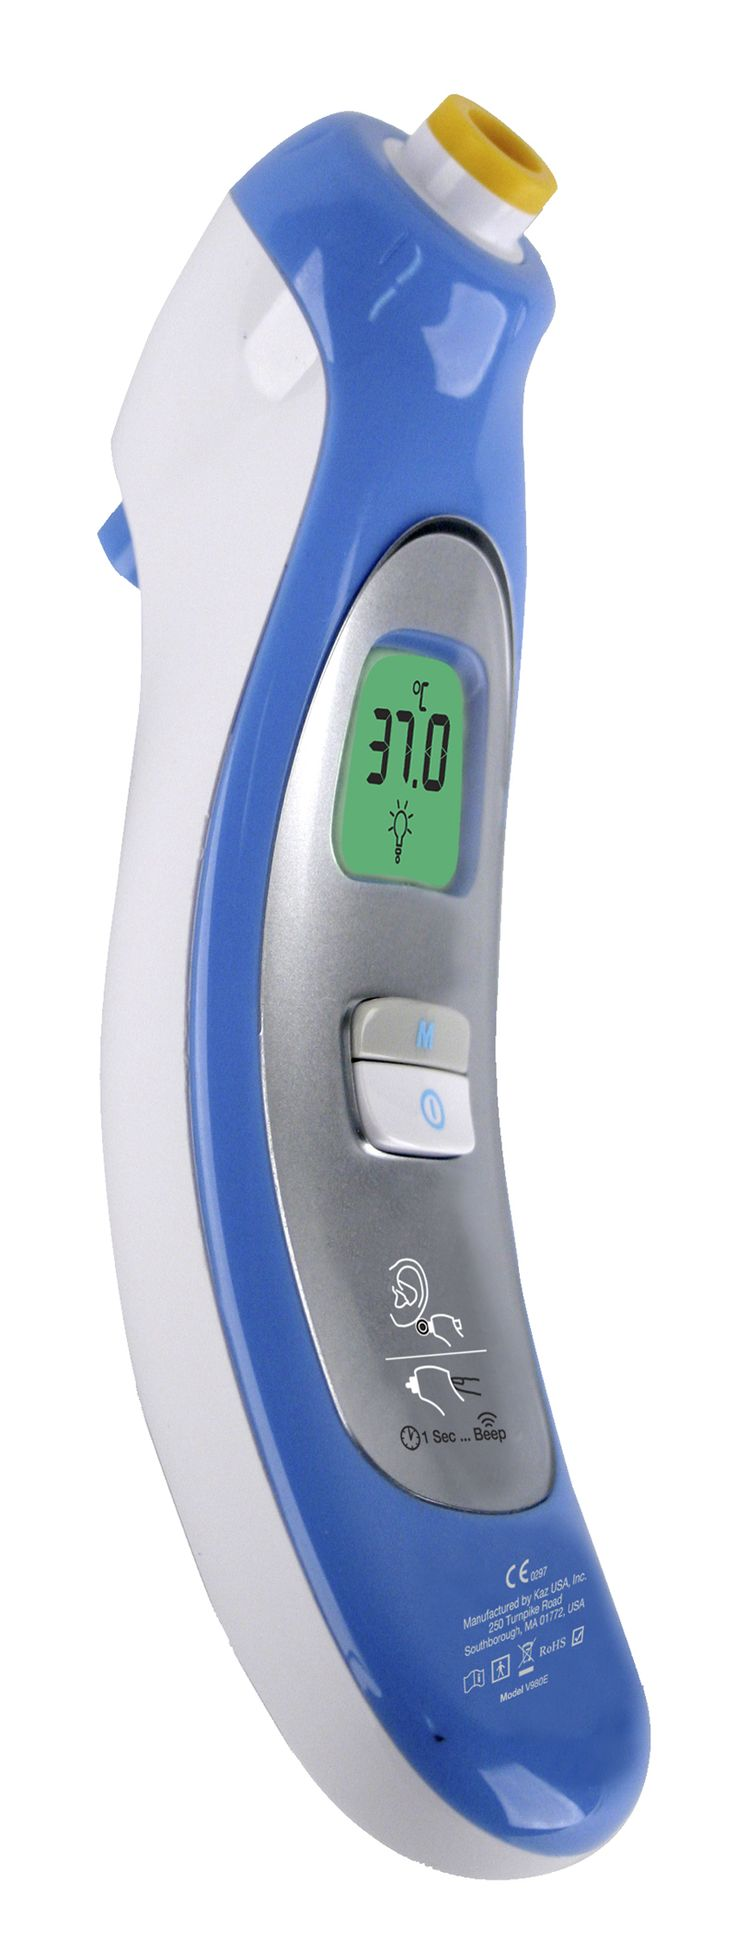 22 best Thermometers images on Pinterest | Baby gifts, Baby presents ...